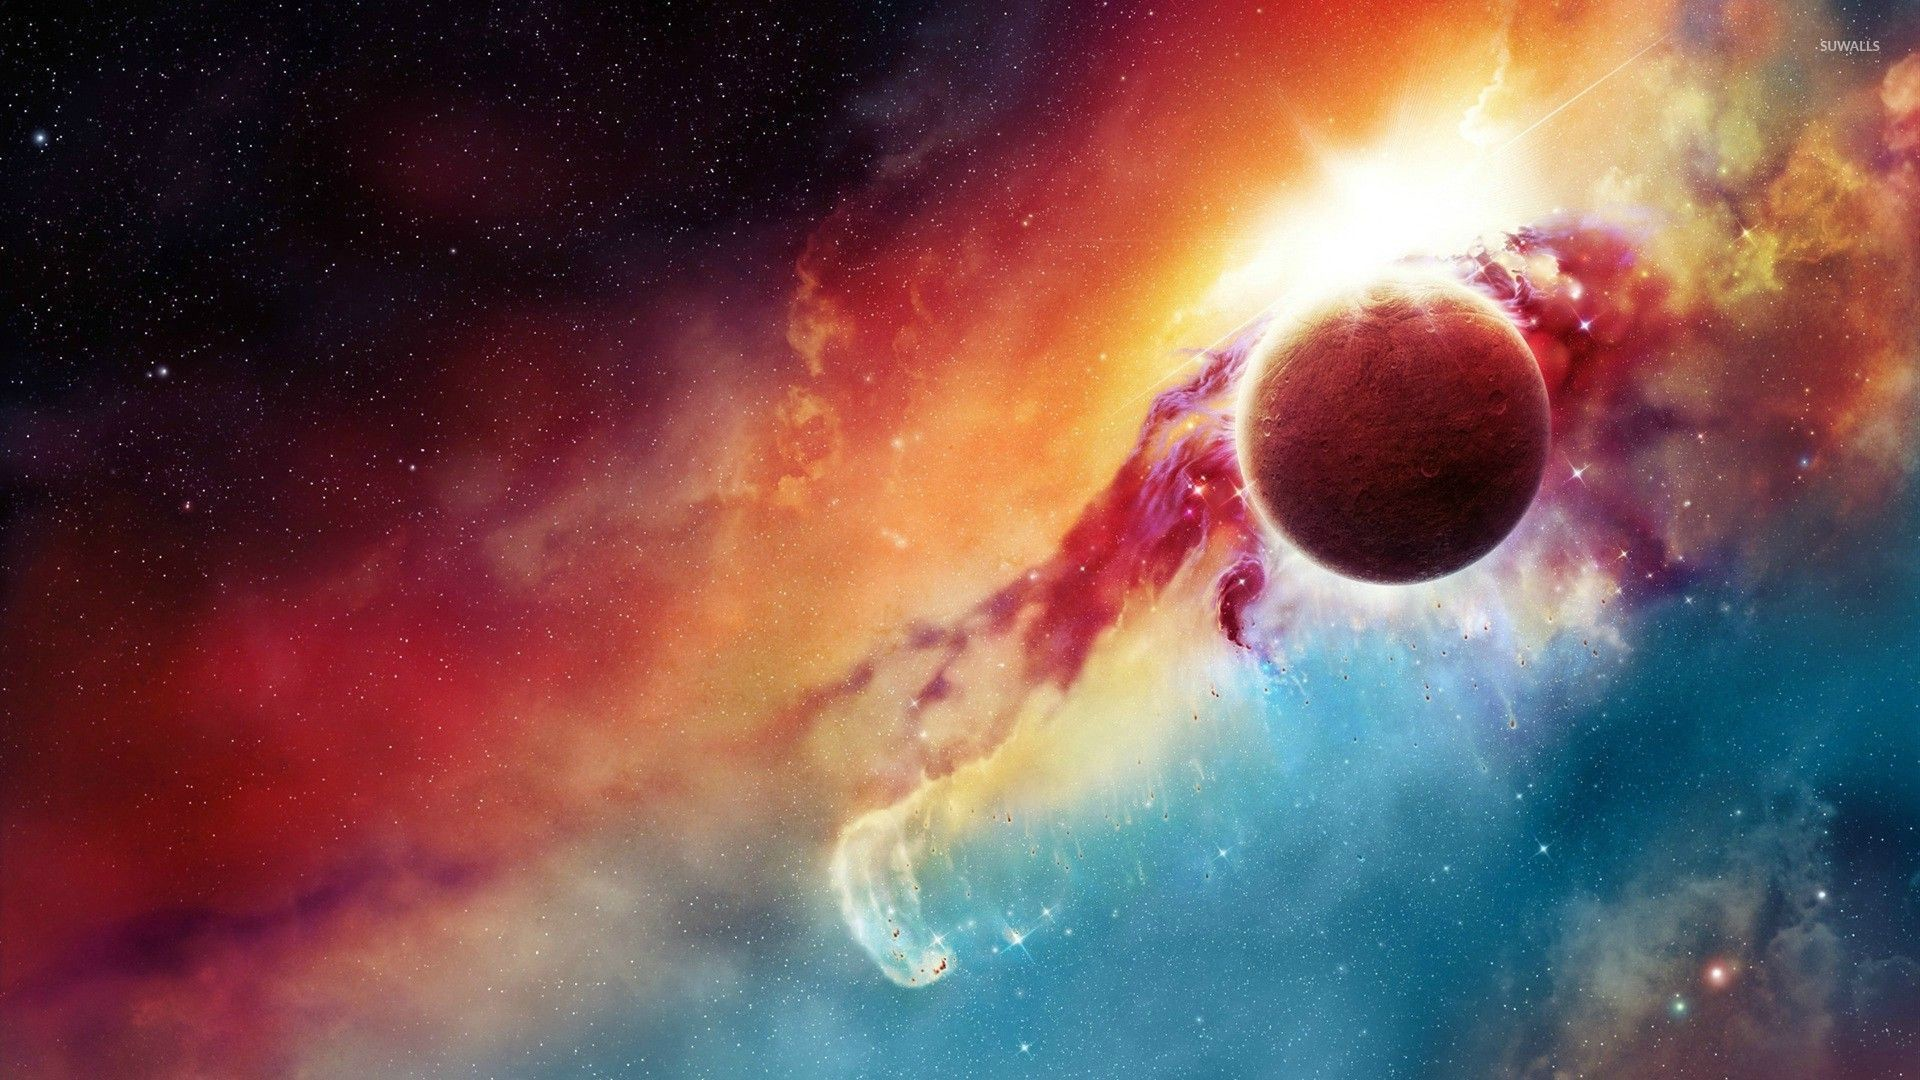 Colorful nebula behind the planet wallpaper · Space · Nebula · Planet ·  …